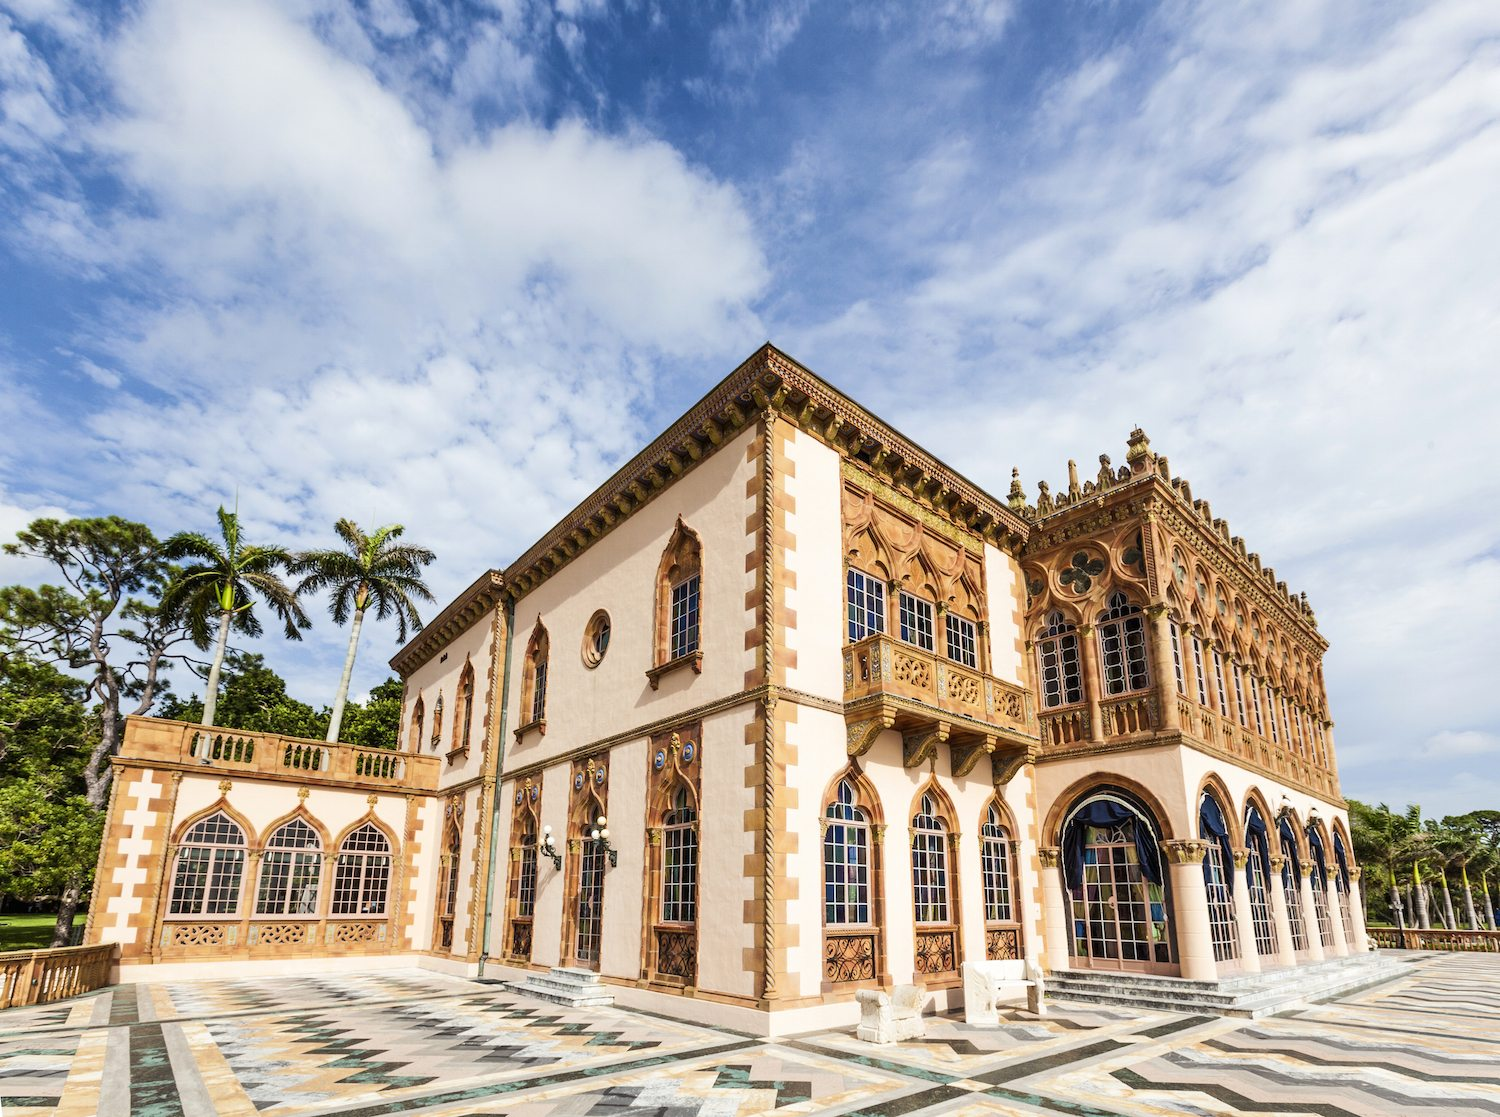 Visit the Ringling Estate in Sarasota, Florida